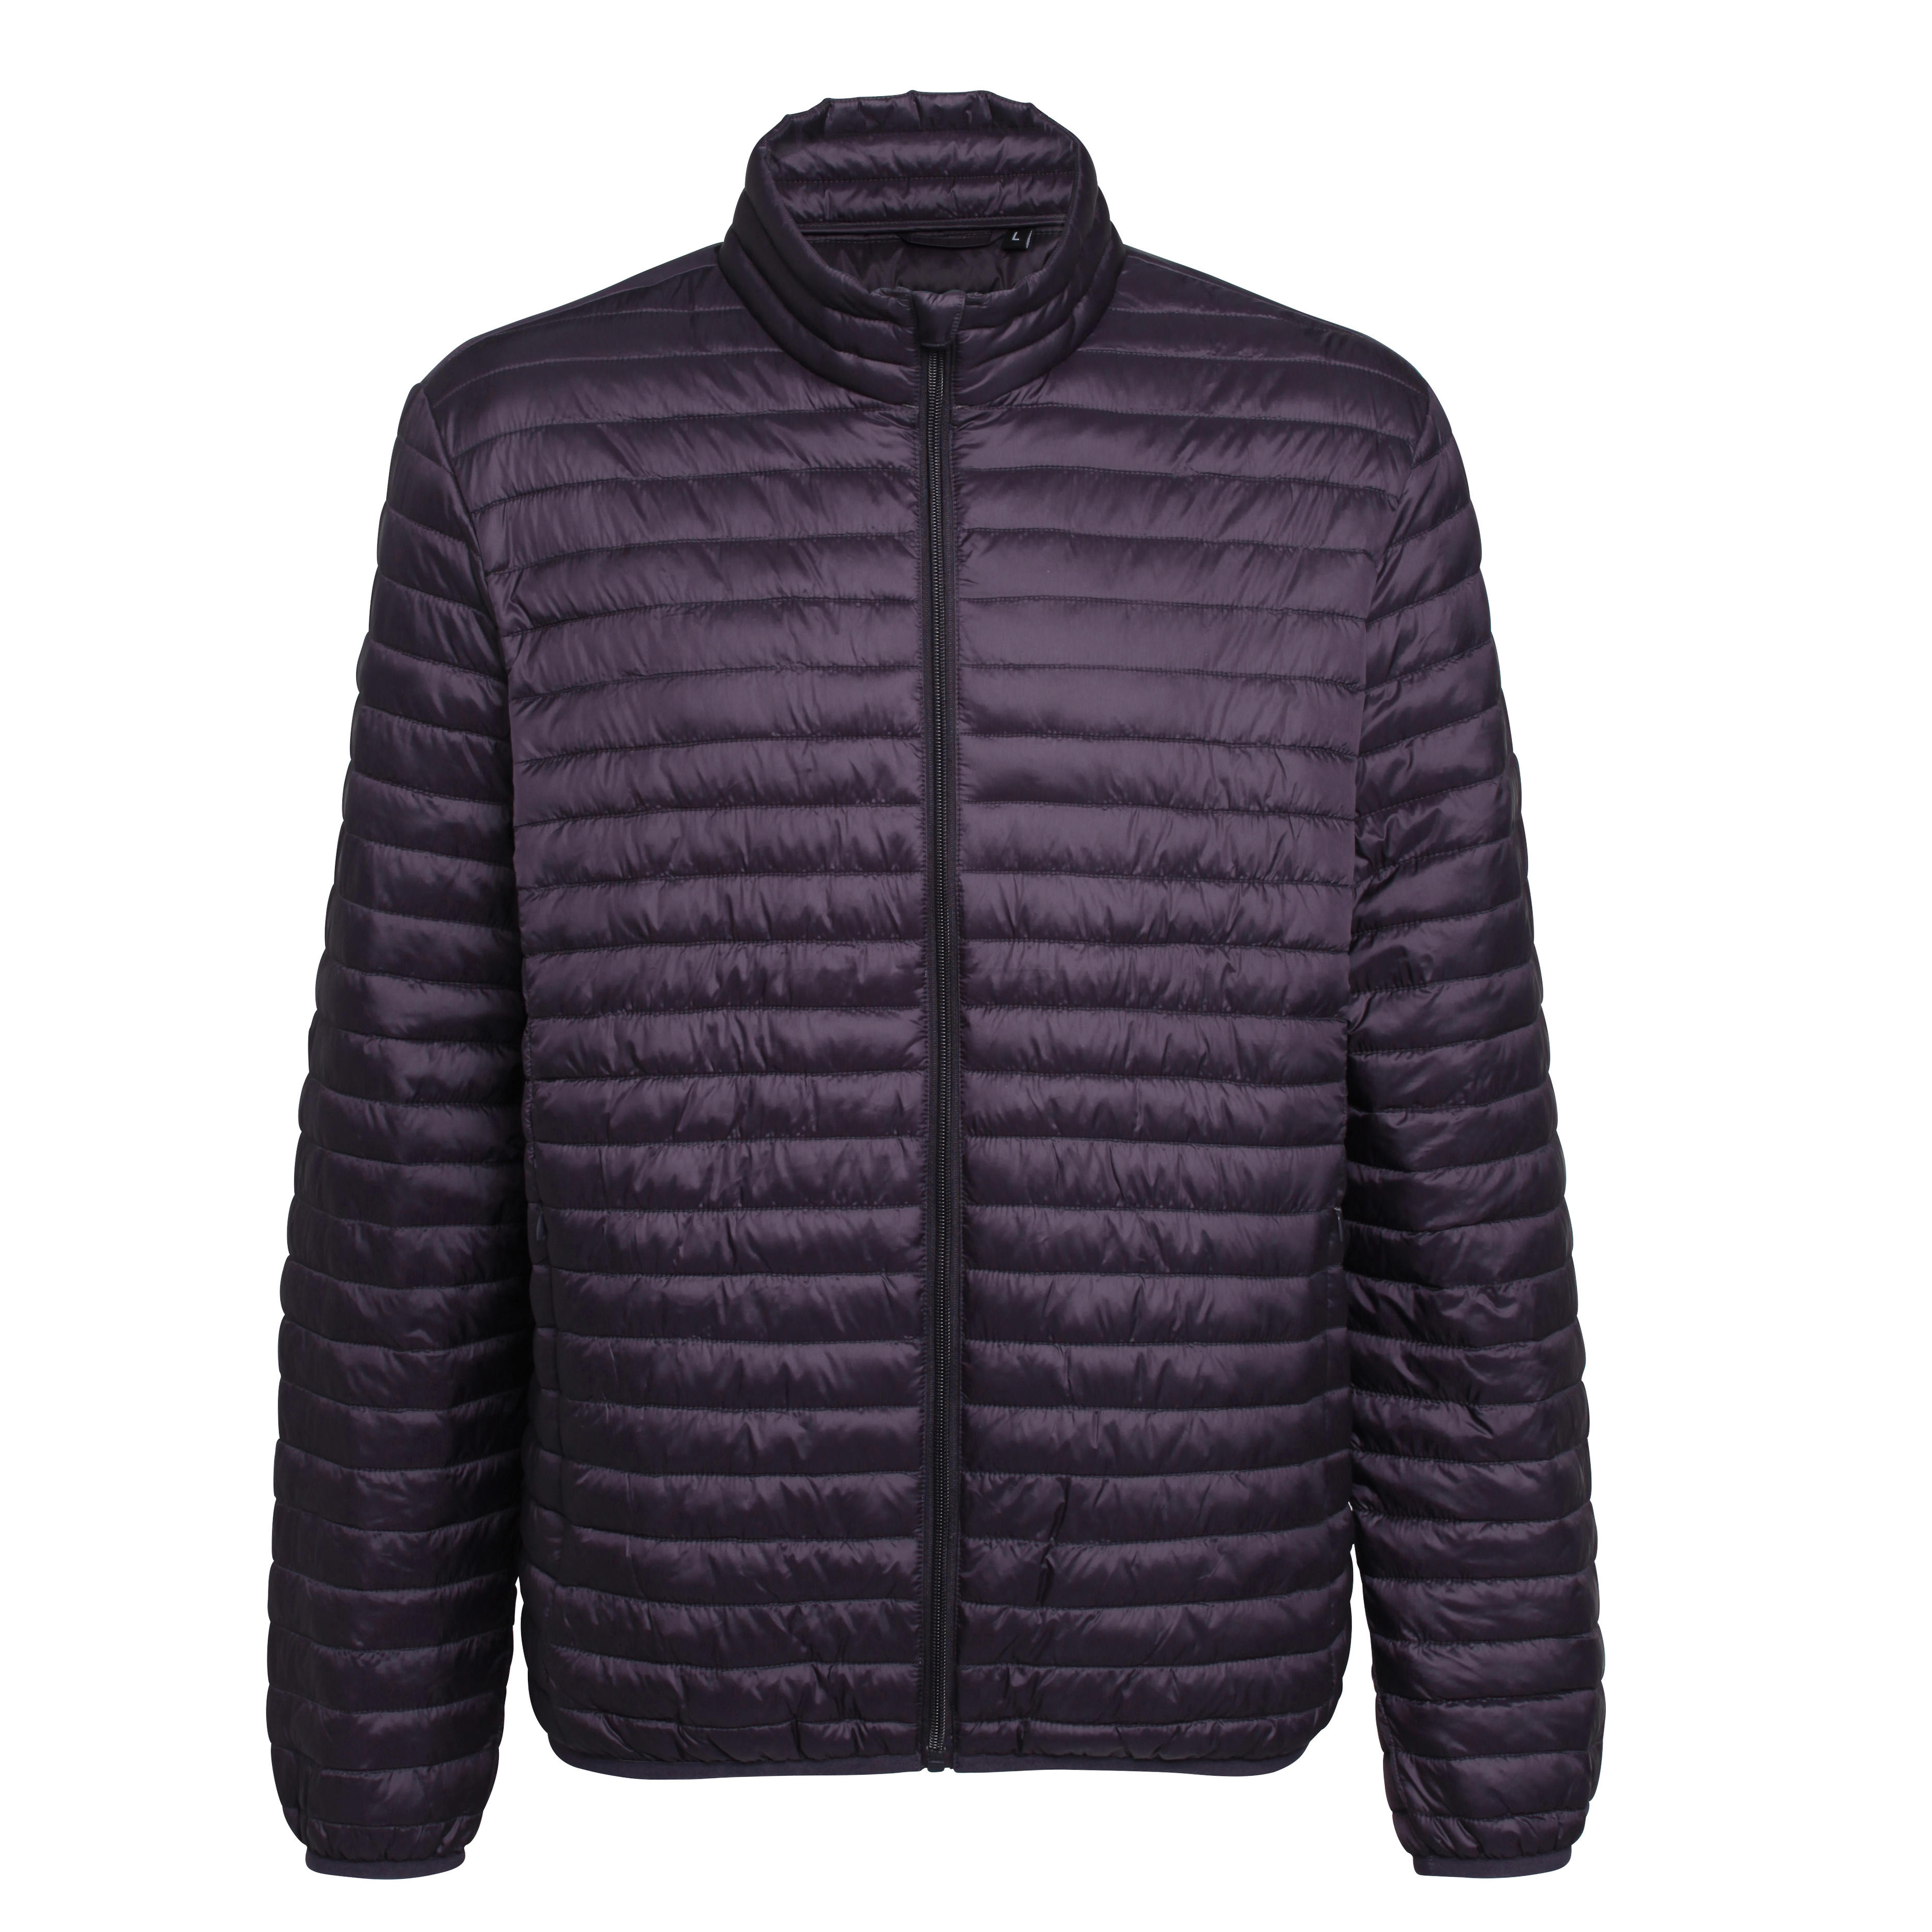 Light Weight Puffer Jackets